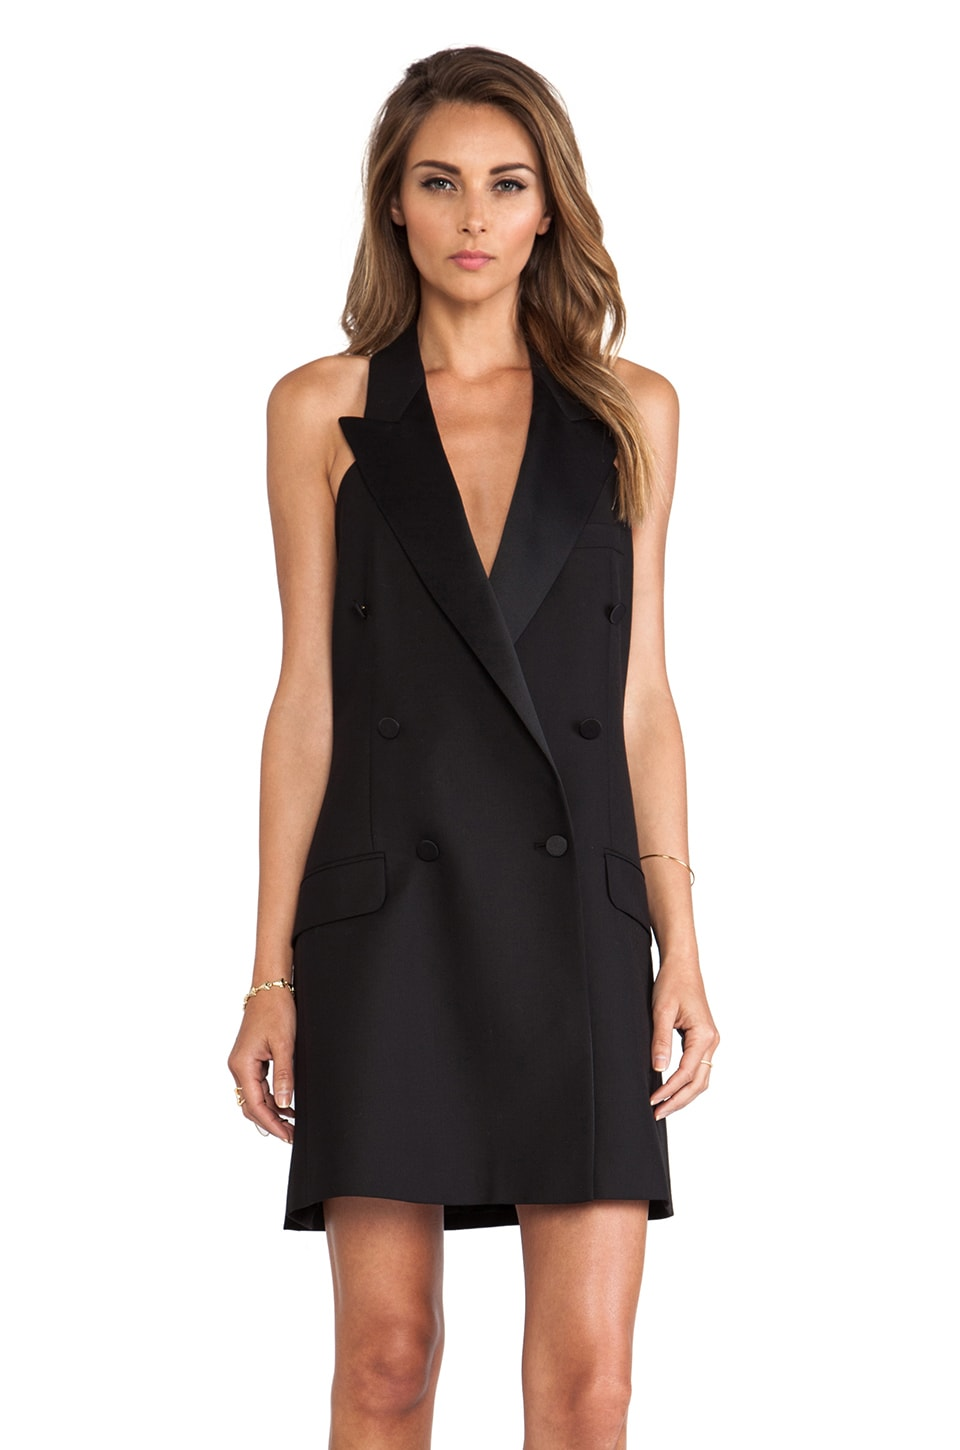 McQ Alexander McQueen Tuxedo Halter Dress in Velvet Black